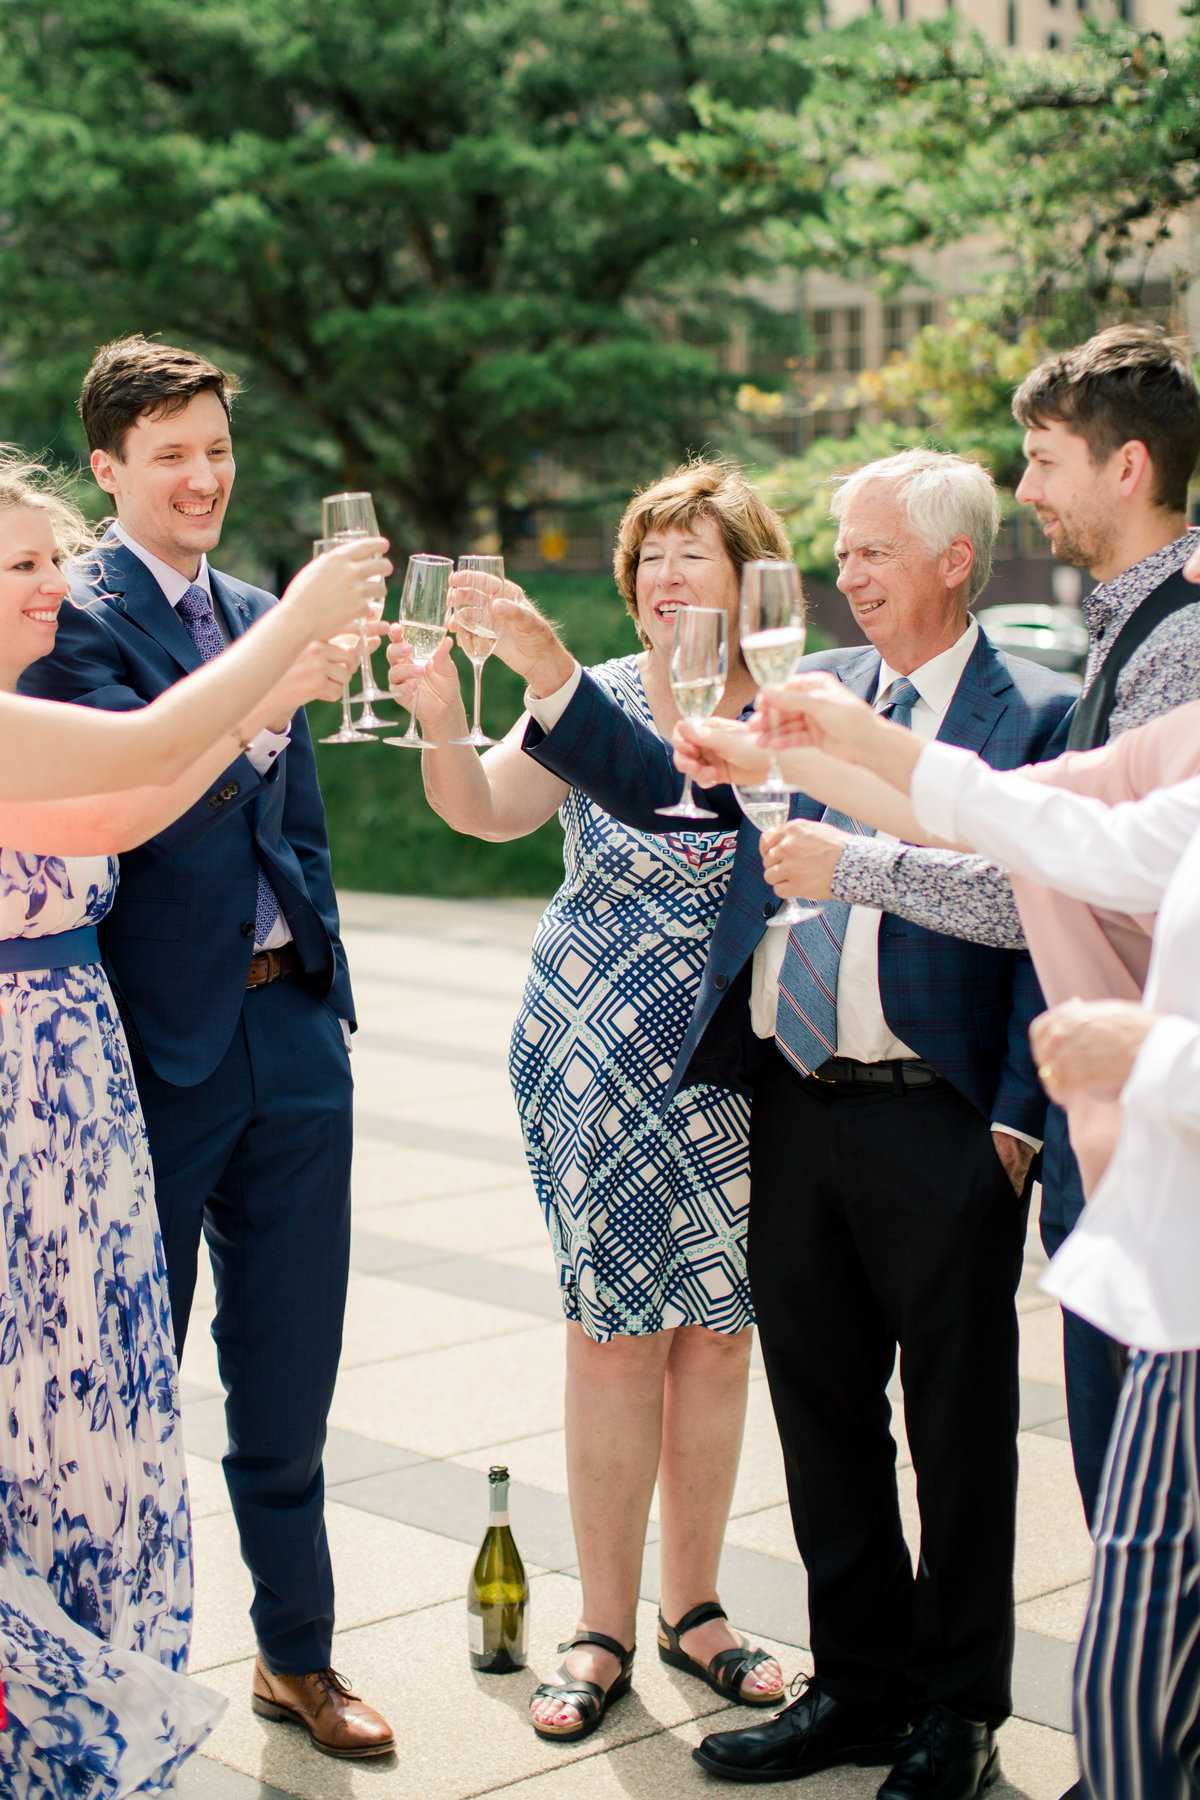 after elopement in downtown minneapolis immediate family cheers with bubbly outside